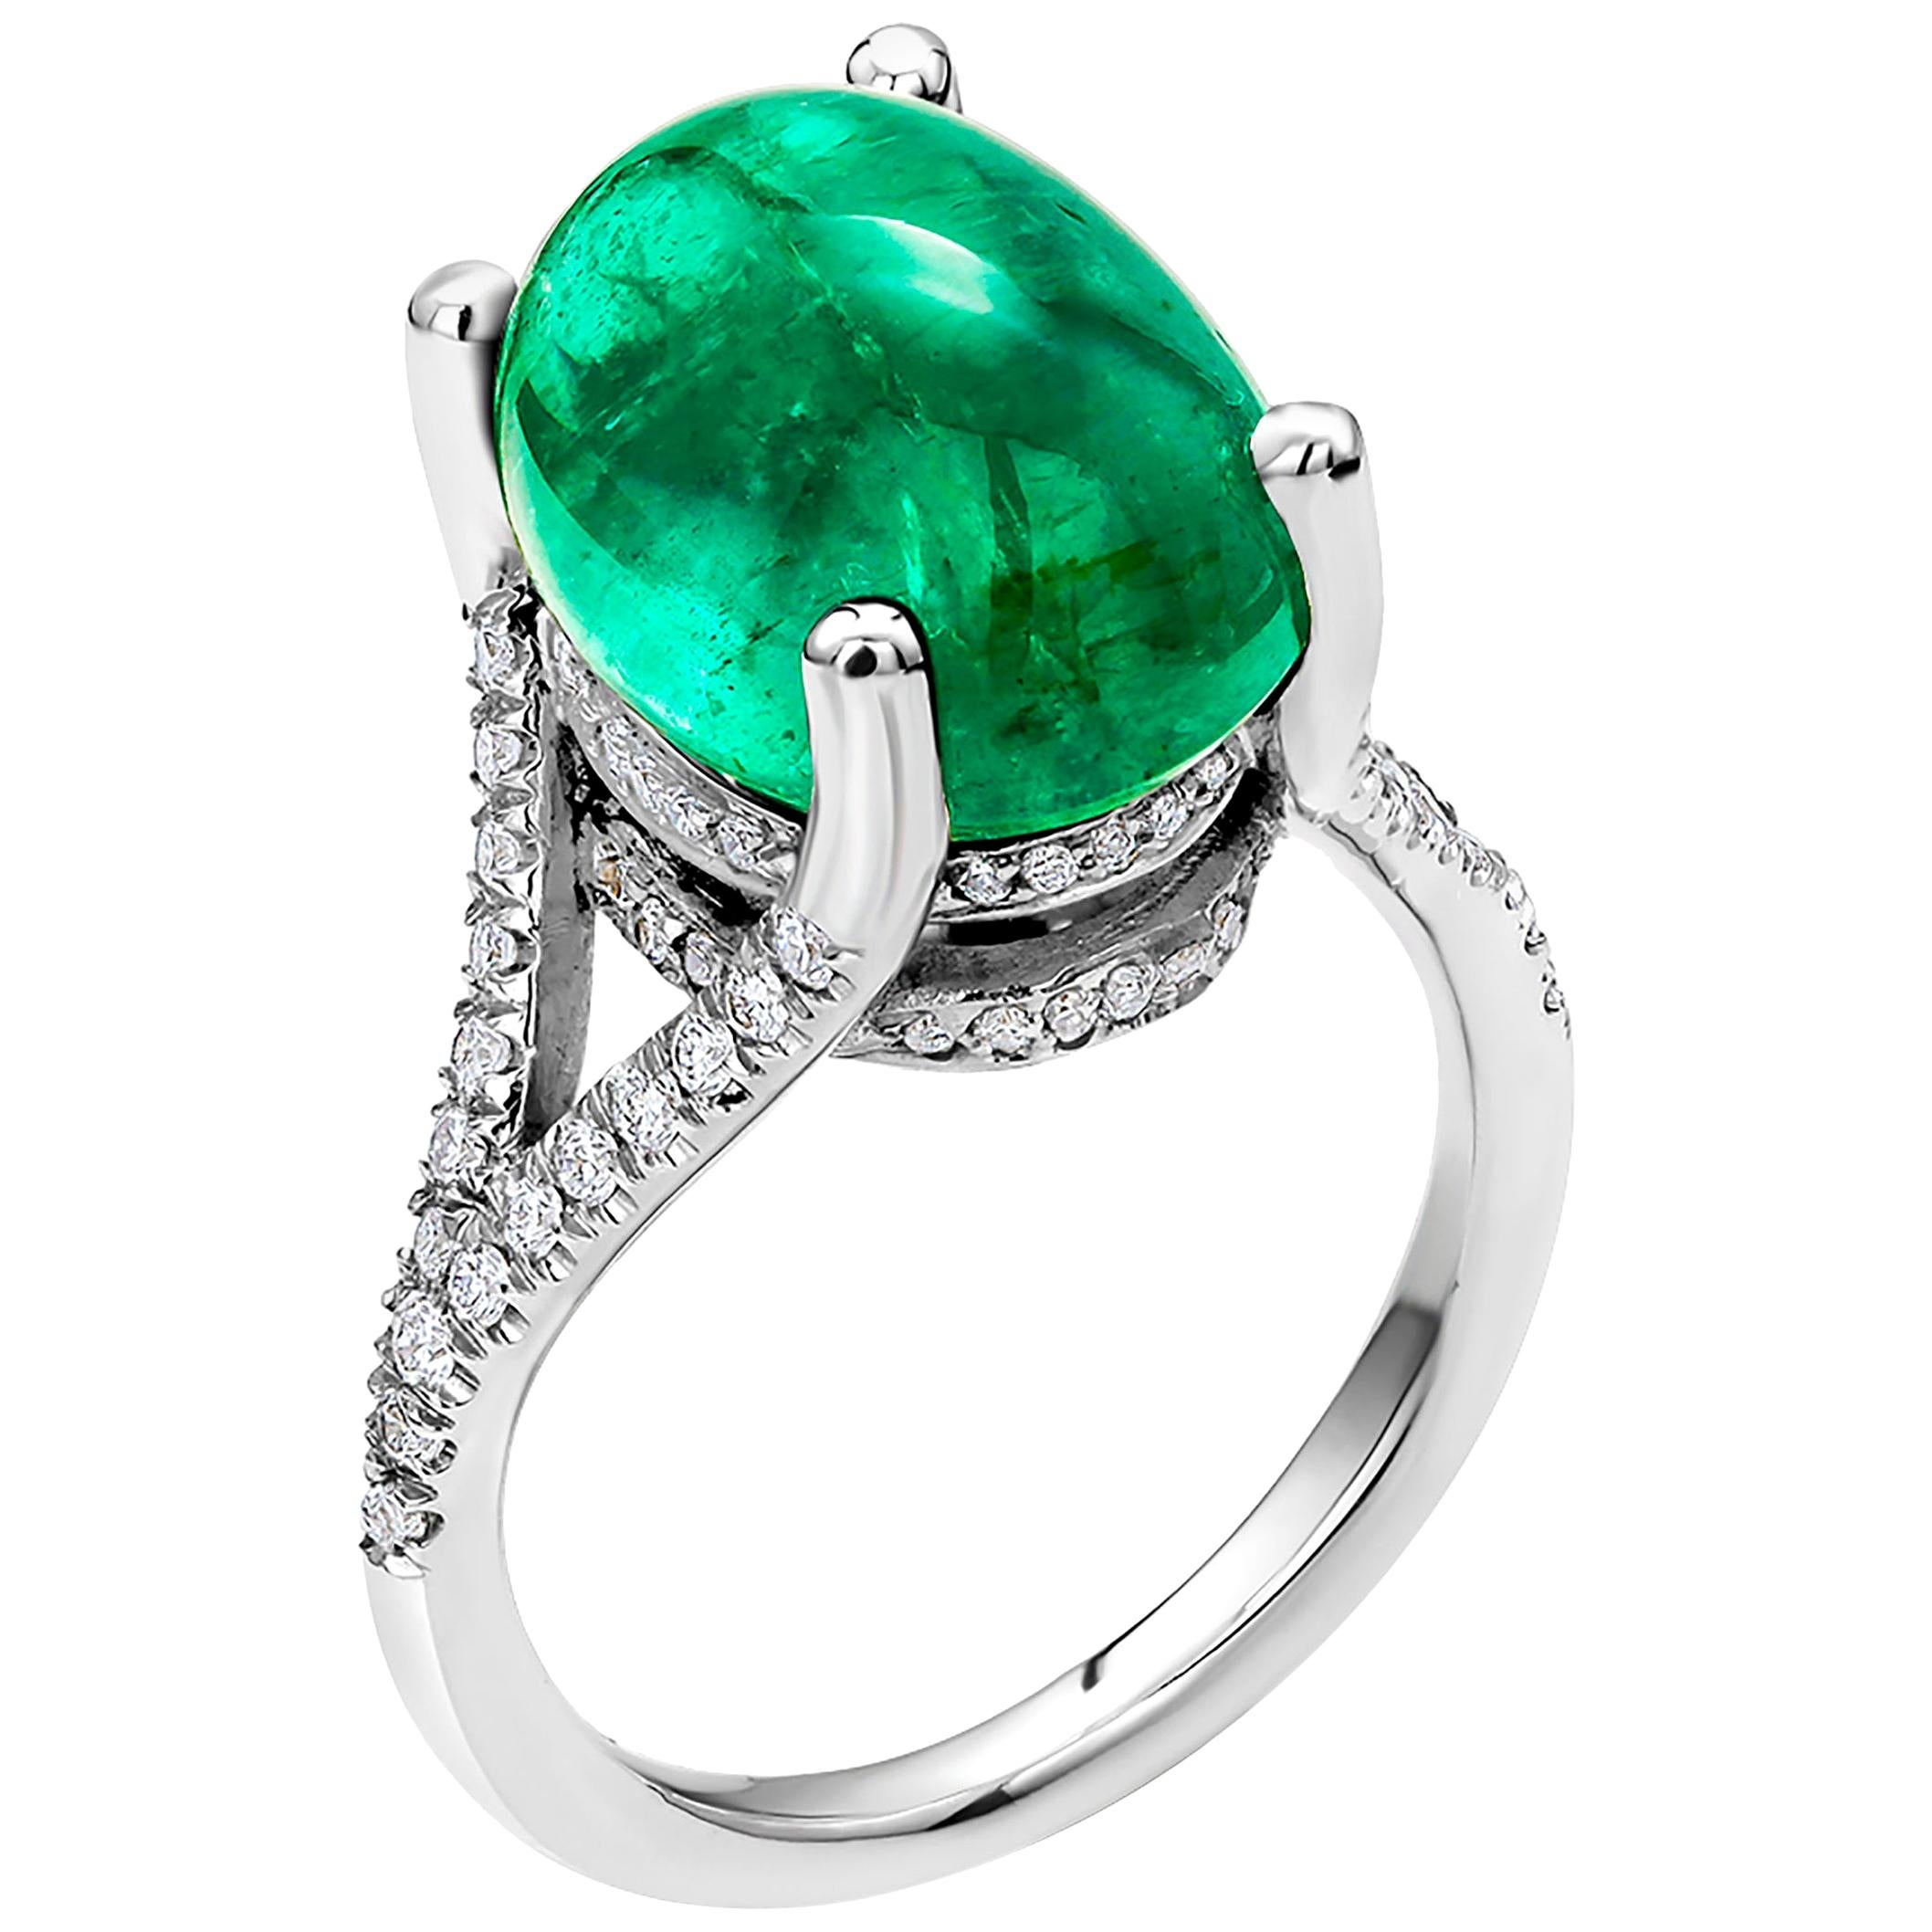 Cabochon Colombia Emerald Diamond Cluster Gold Ring Weighing 11.05 Carat